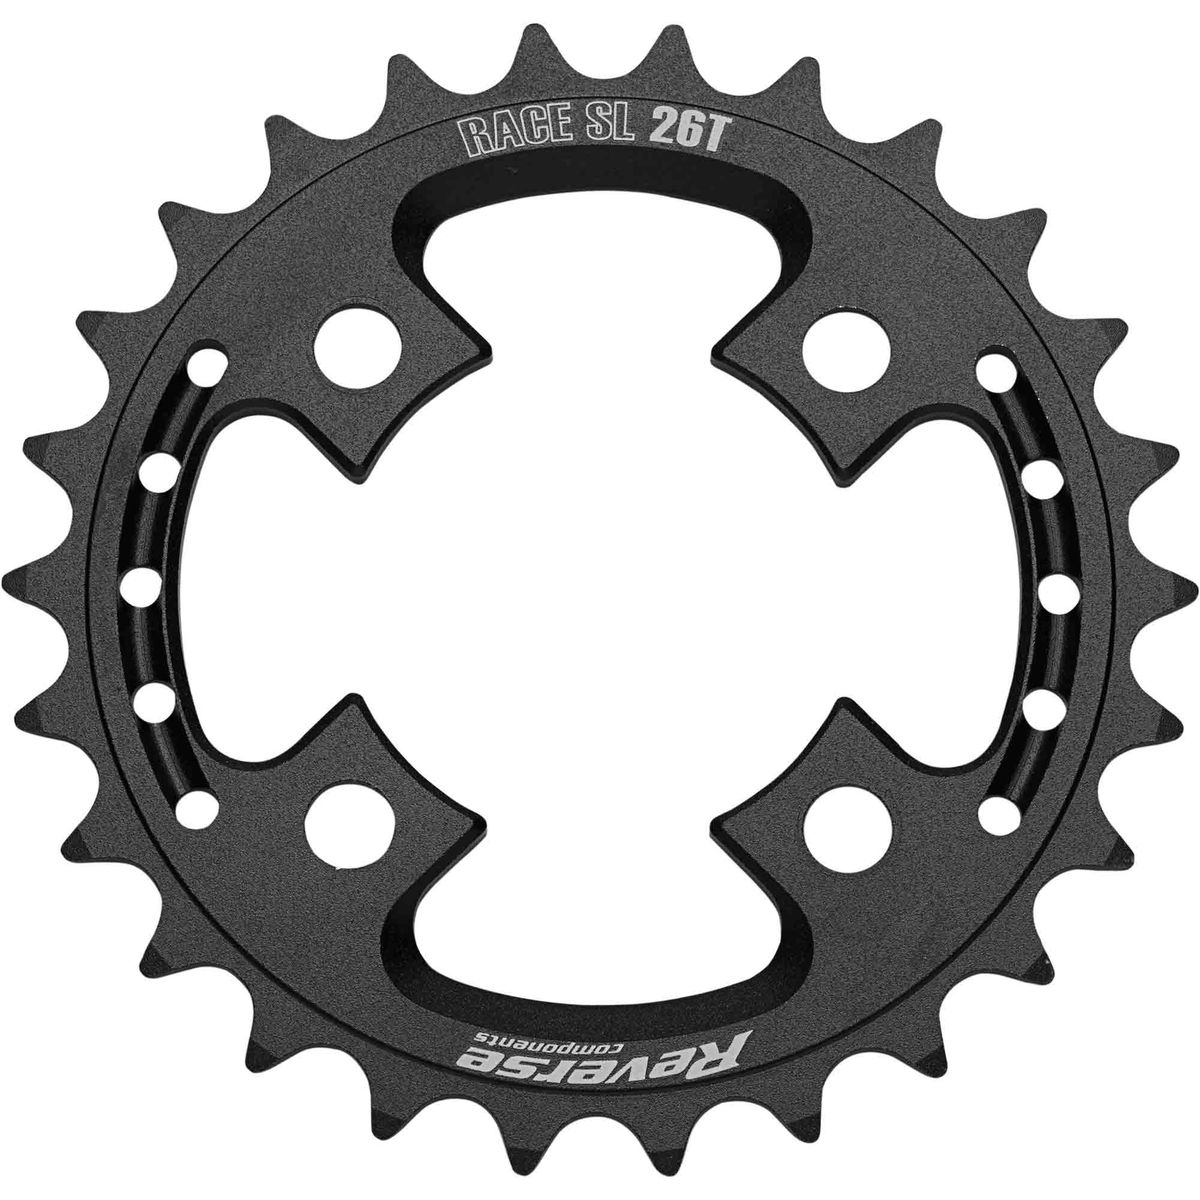 Race SL chainring